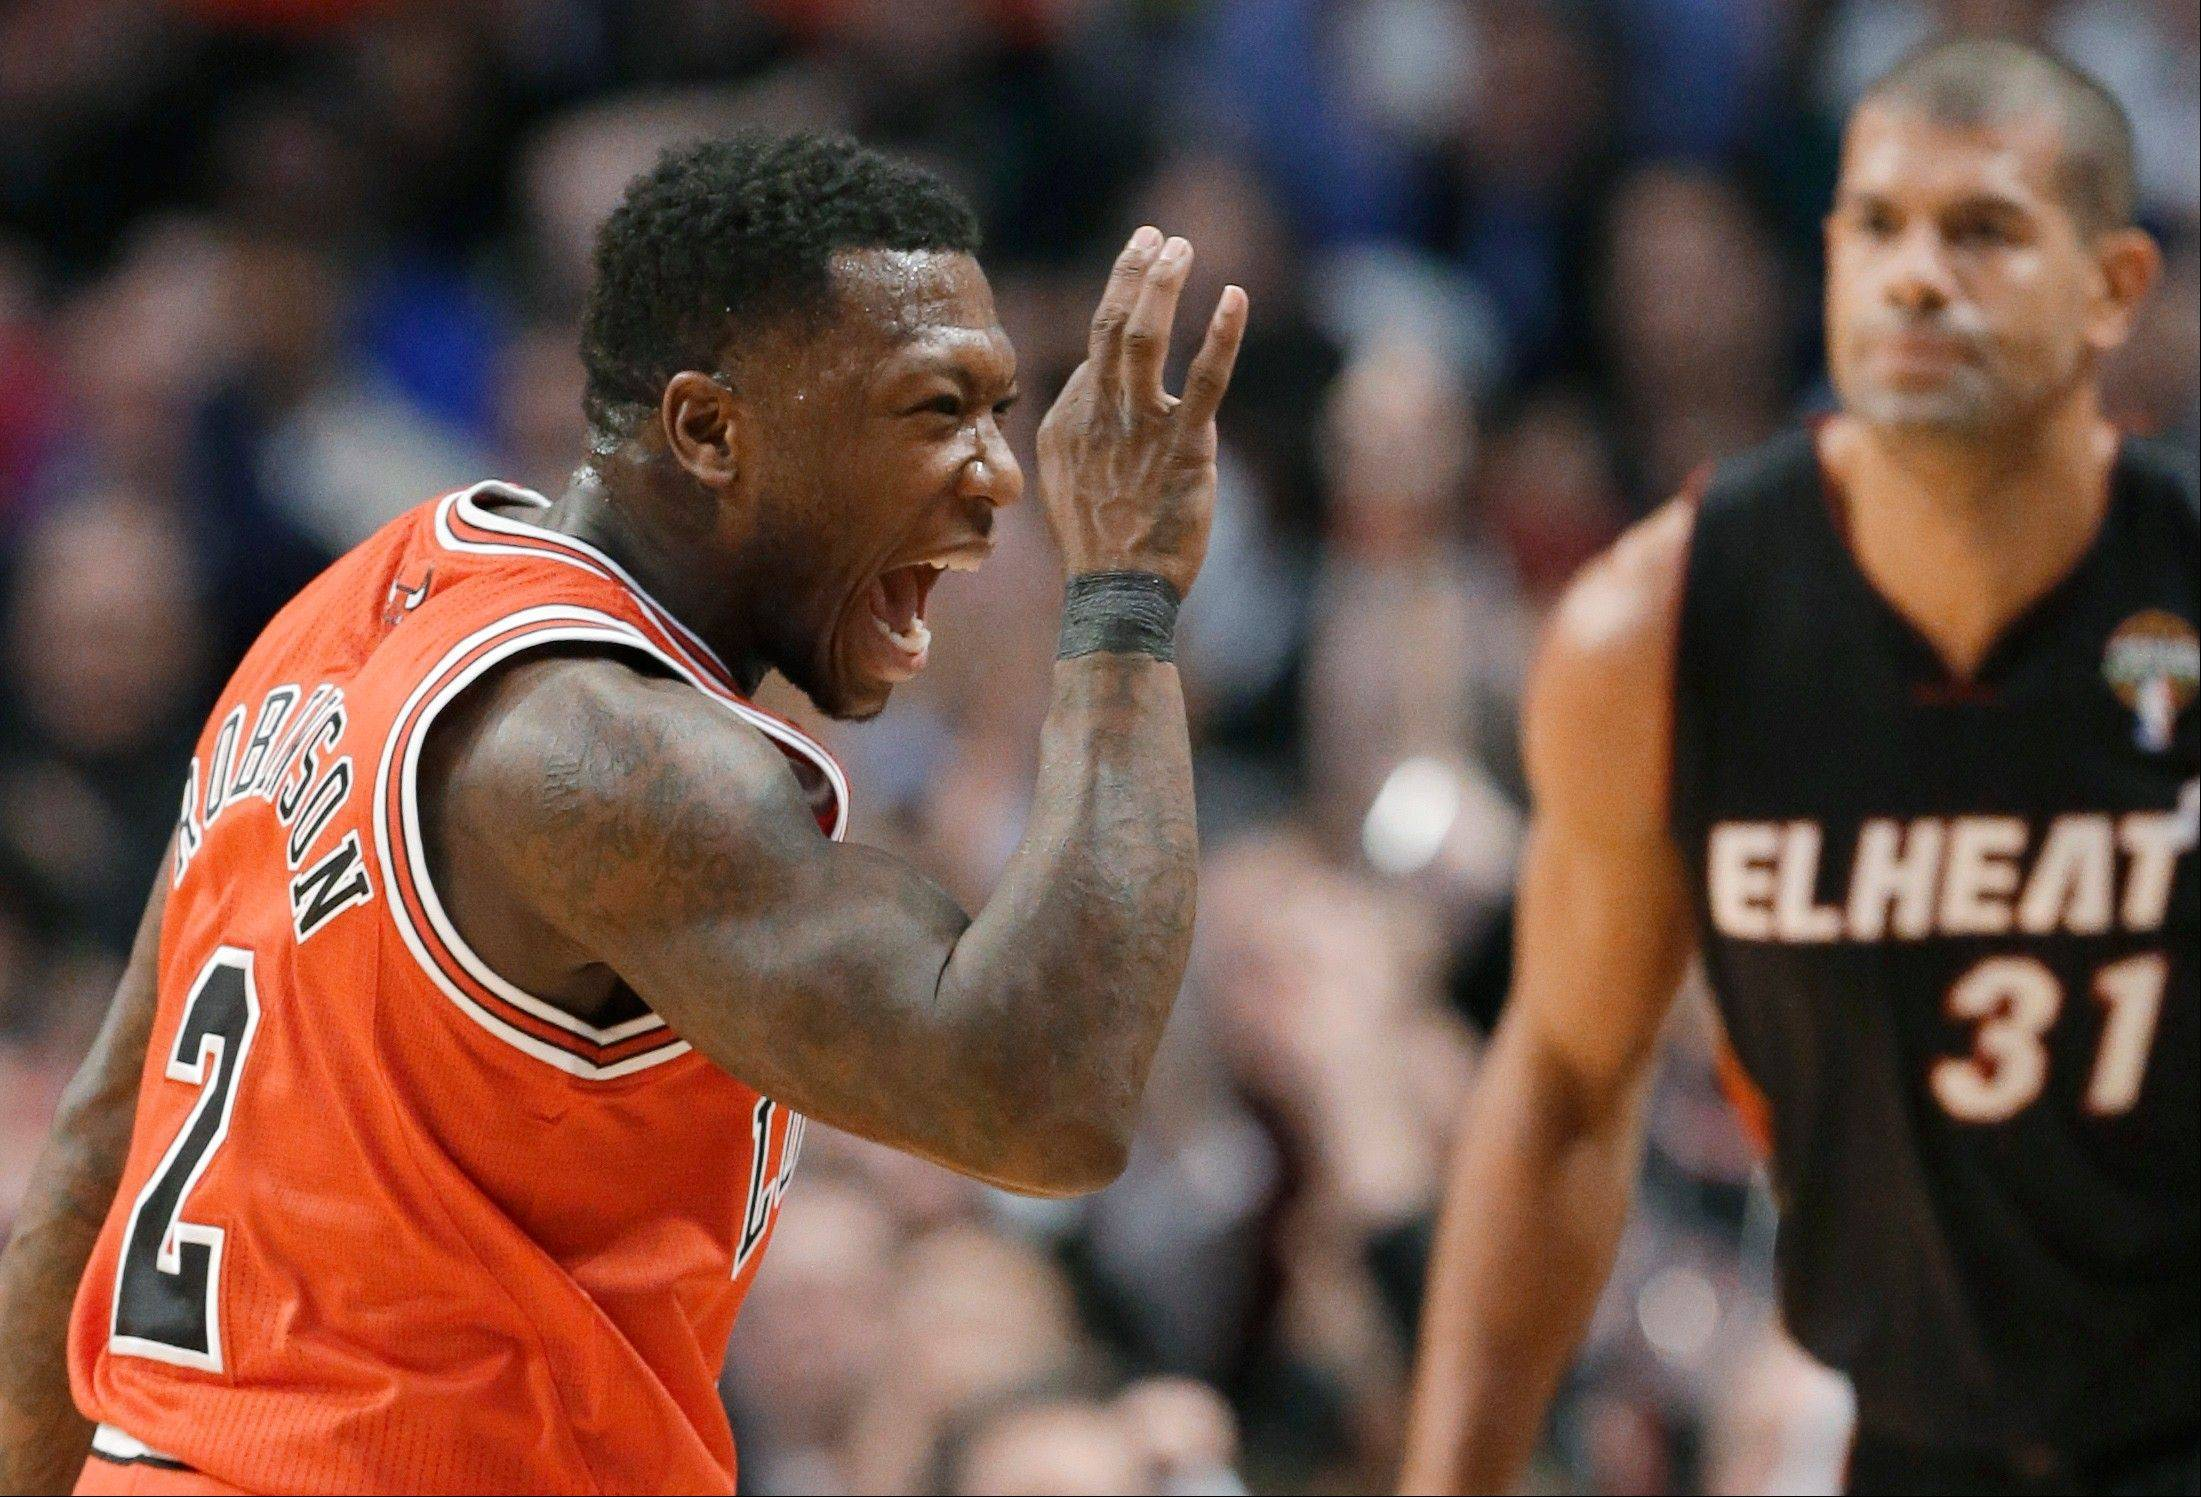 Bulls guard Nate Robinson, left, celebrates a 3-point shot, as Miami Heat forward Shane Battier watches during the first half last night at the United Center. The Bulls kept celebrating all night, ending the Heat's 27-game winning streak.